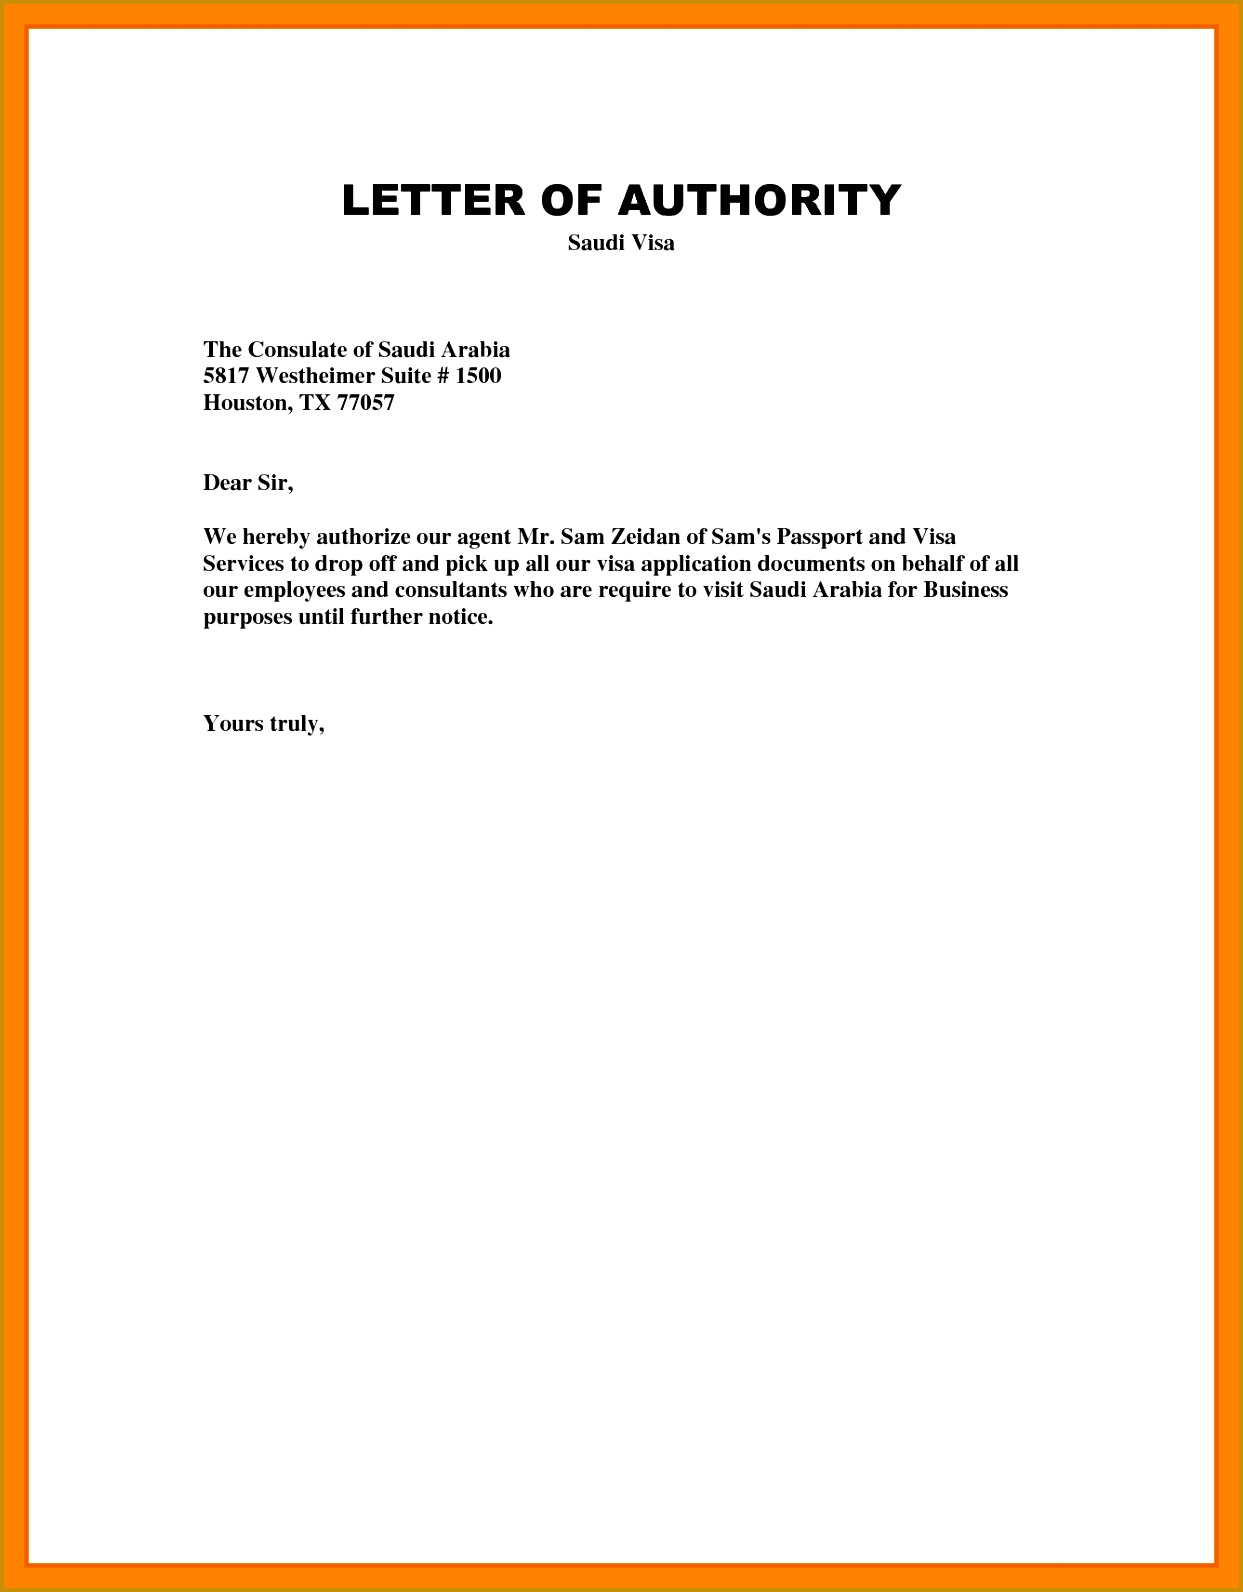 5 how to write authorisation letter 15921243